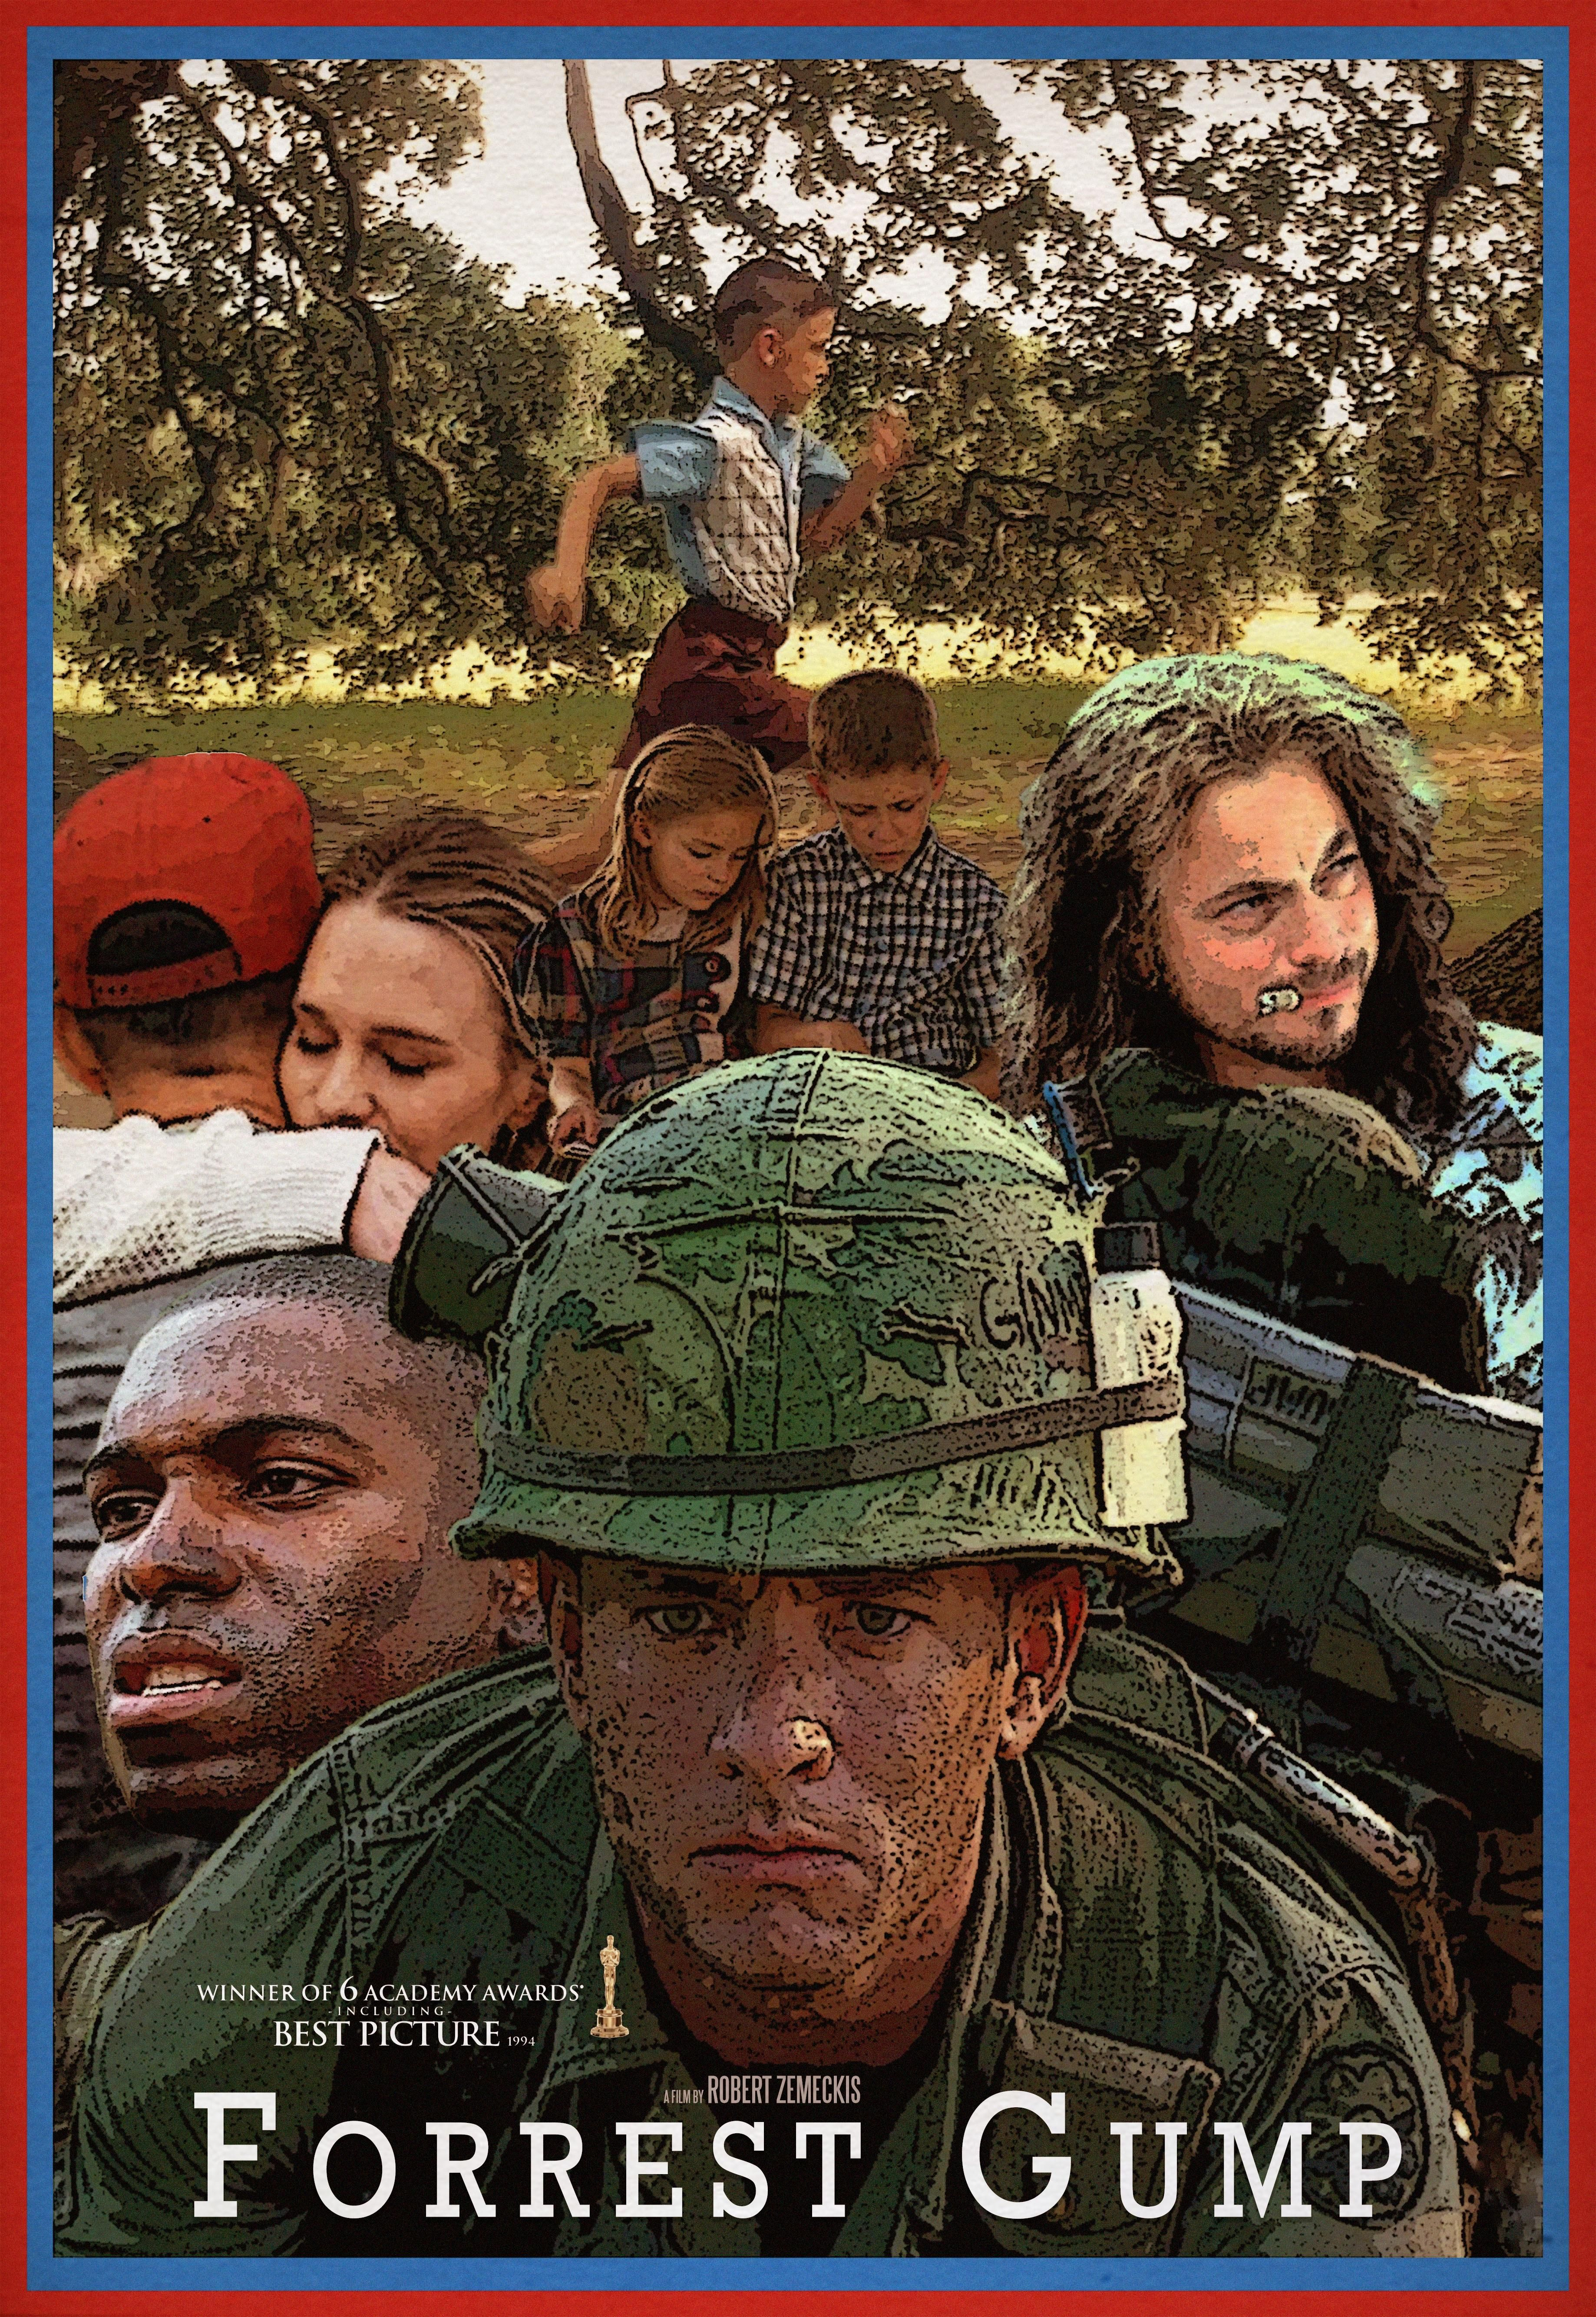 Forrest gump 1994 best movie posters good movies